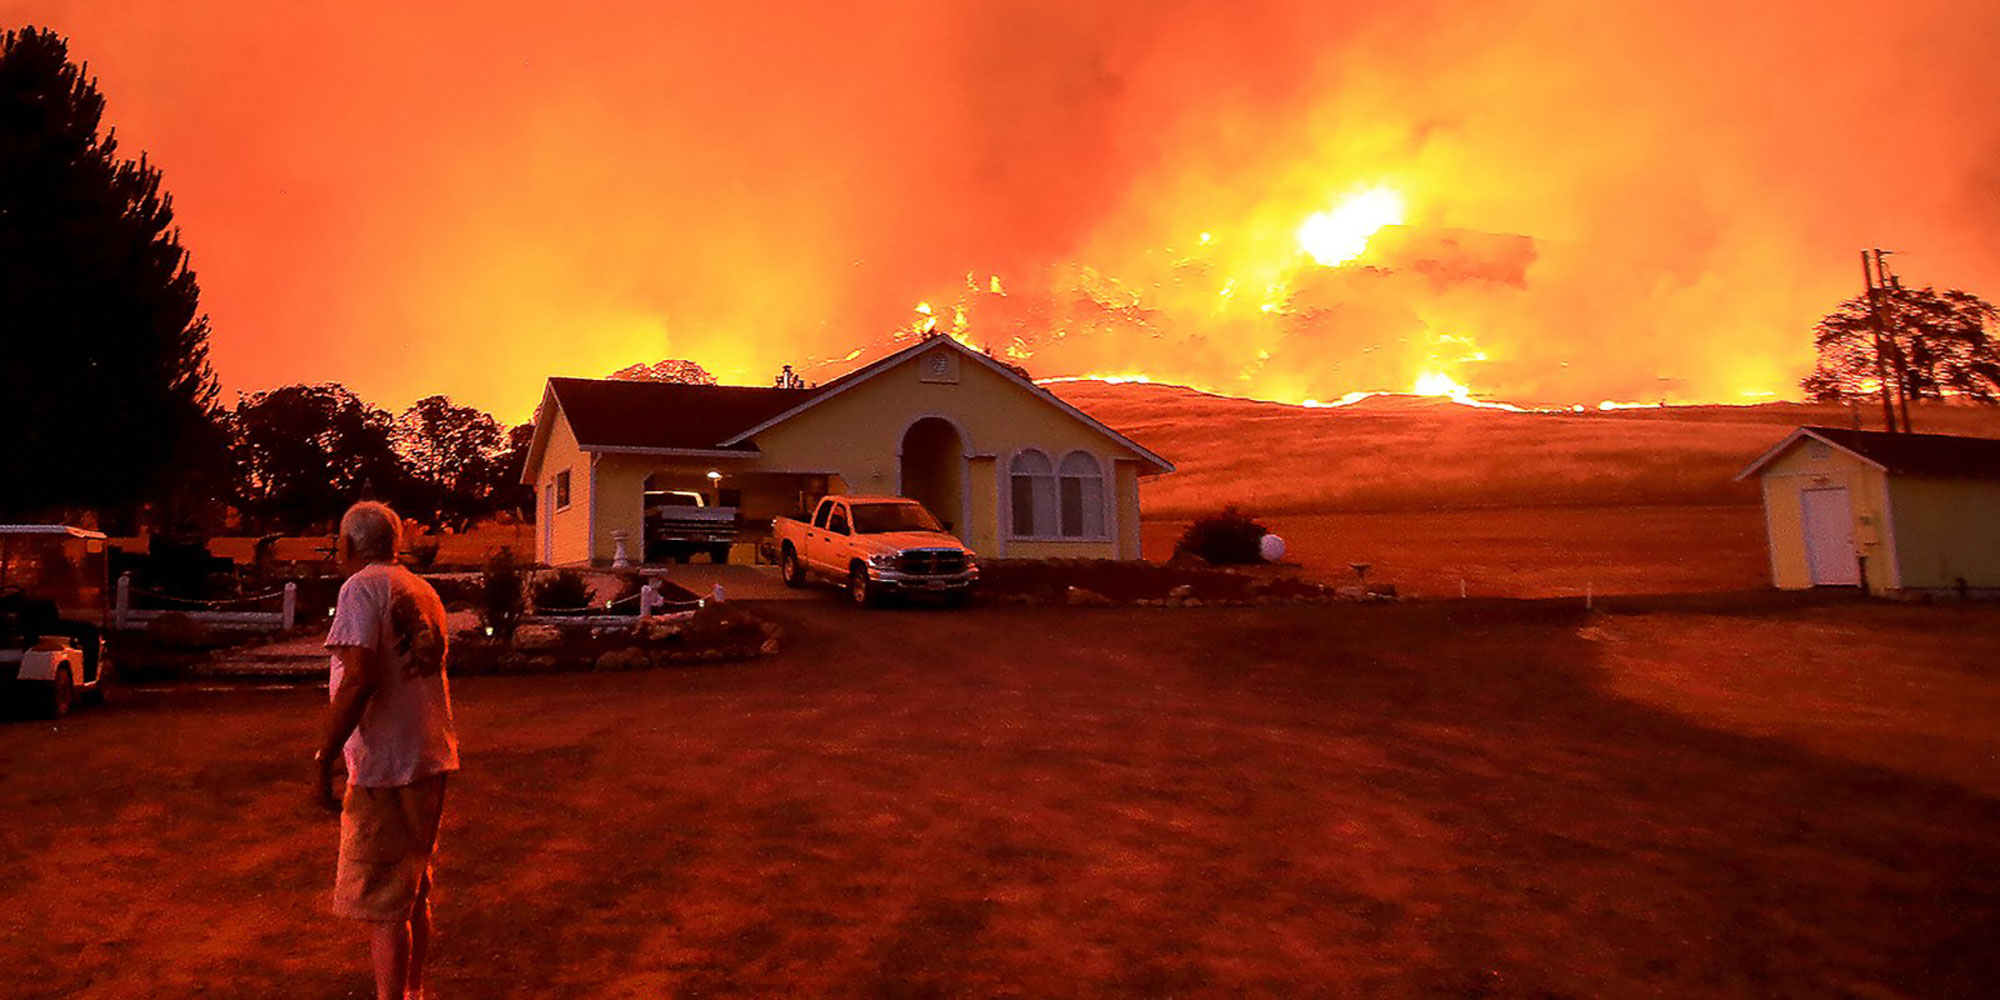 man in front of house with wildfire in surrounding landscape